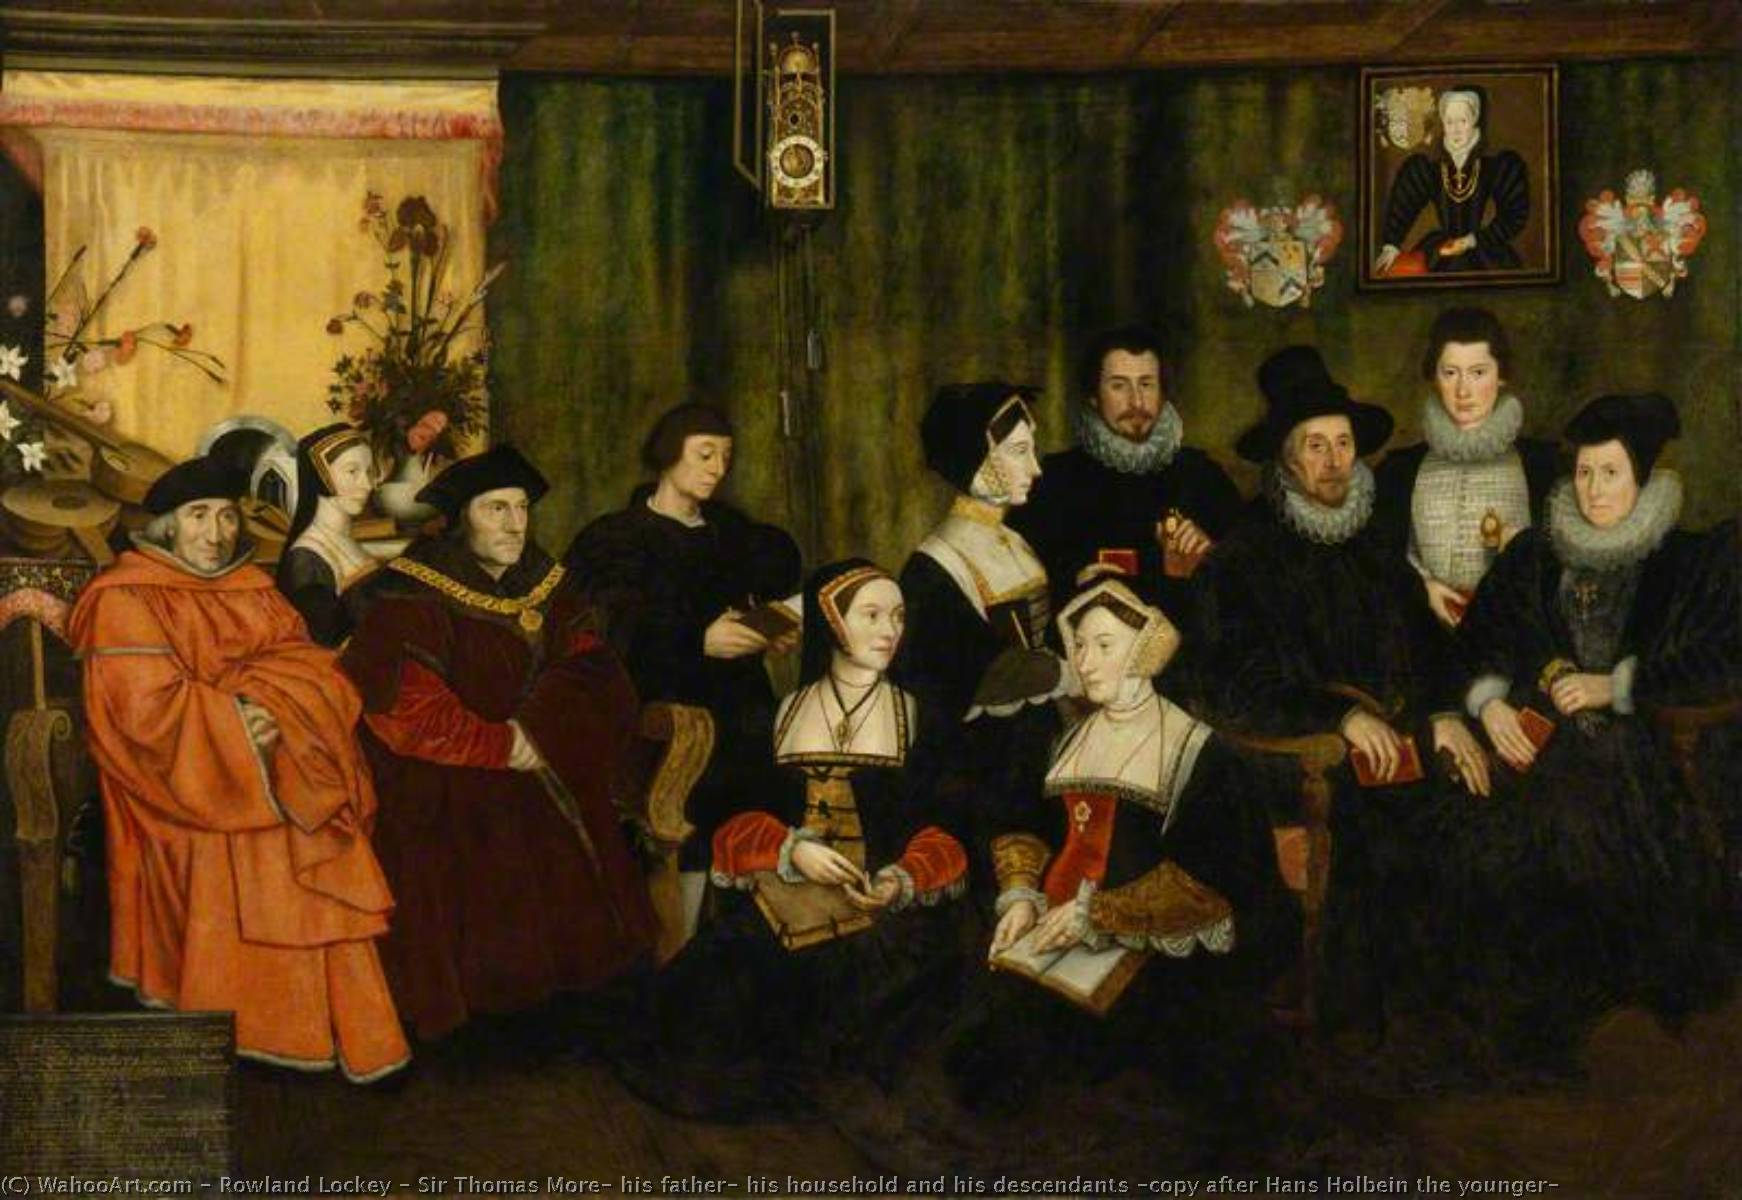 Sir Thomas More, his father, his household and his descendants (copy after Hans Holbein the younger), 1593 by Rowland Lockey | WahooArt.com